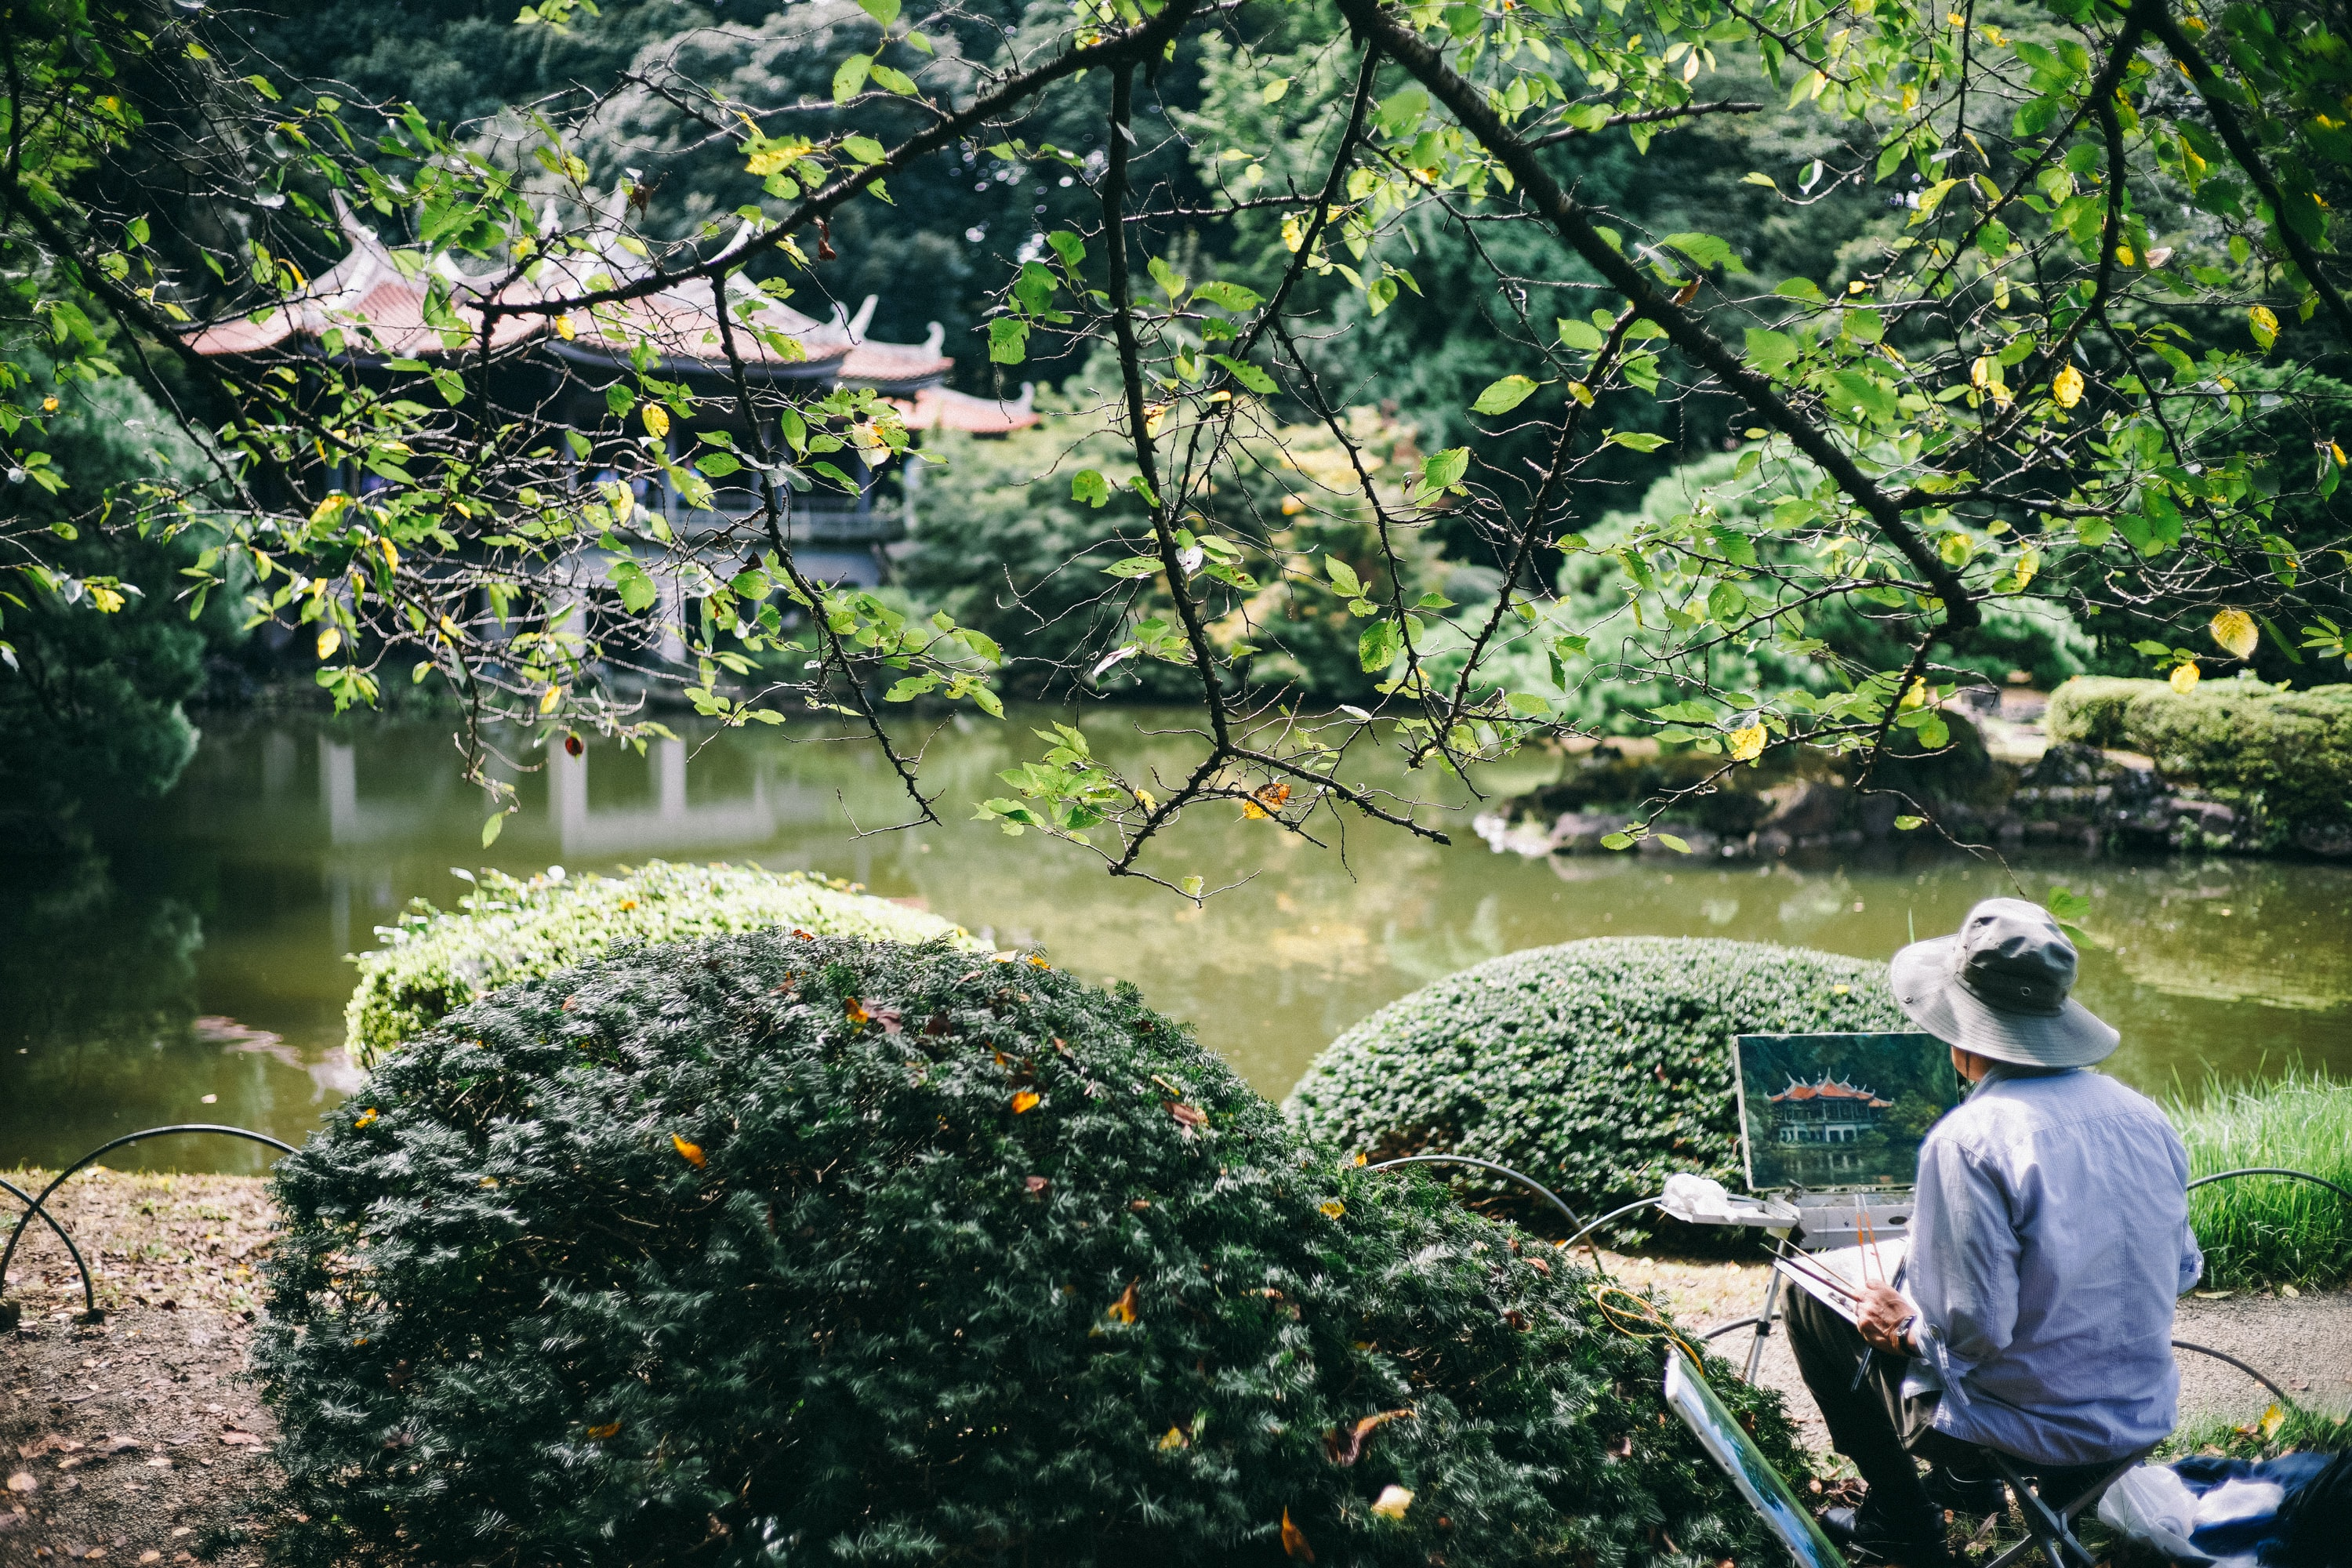 A person painting a temple and the trees, branches, grass, and water at Shinjuku Gyoen National Garden